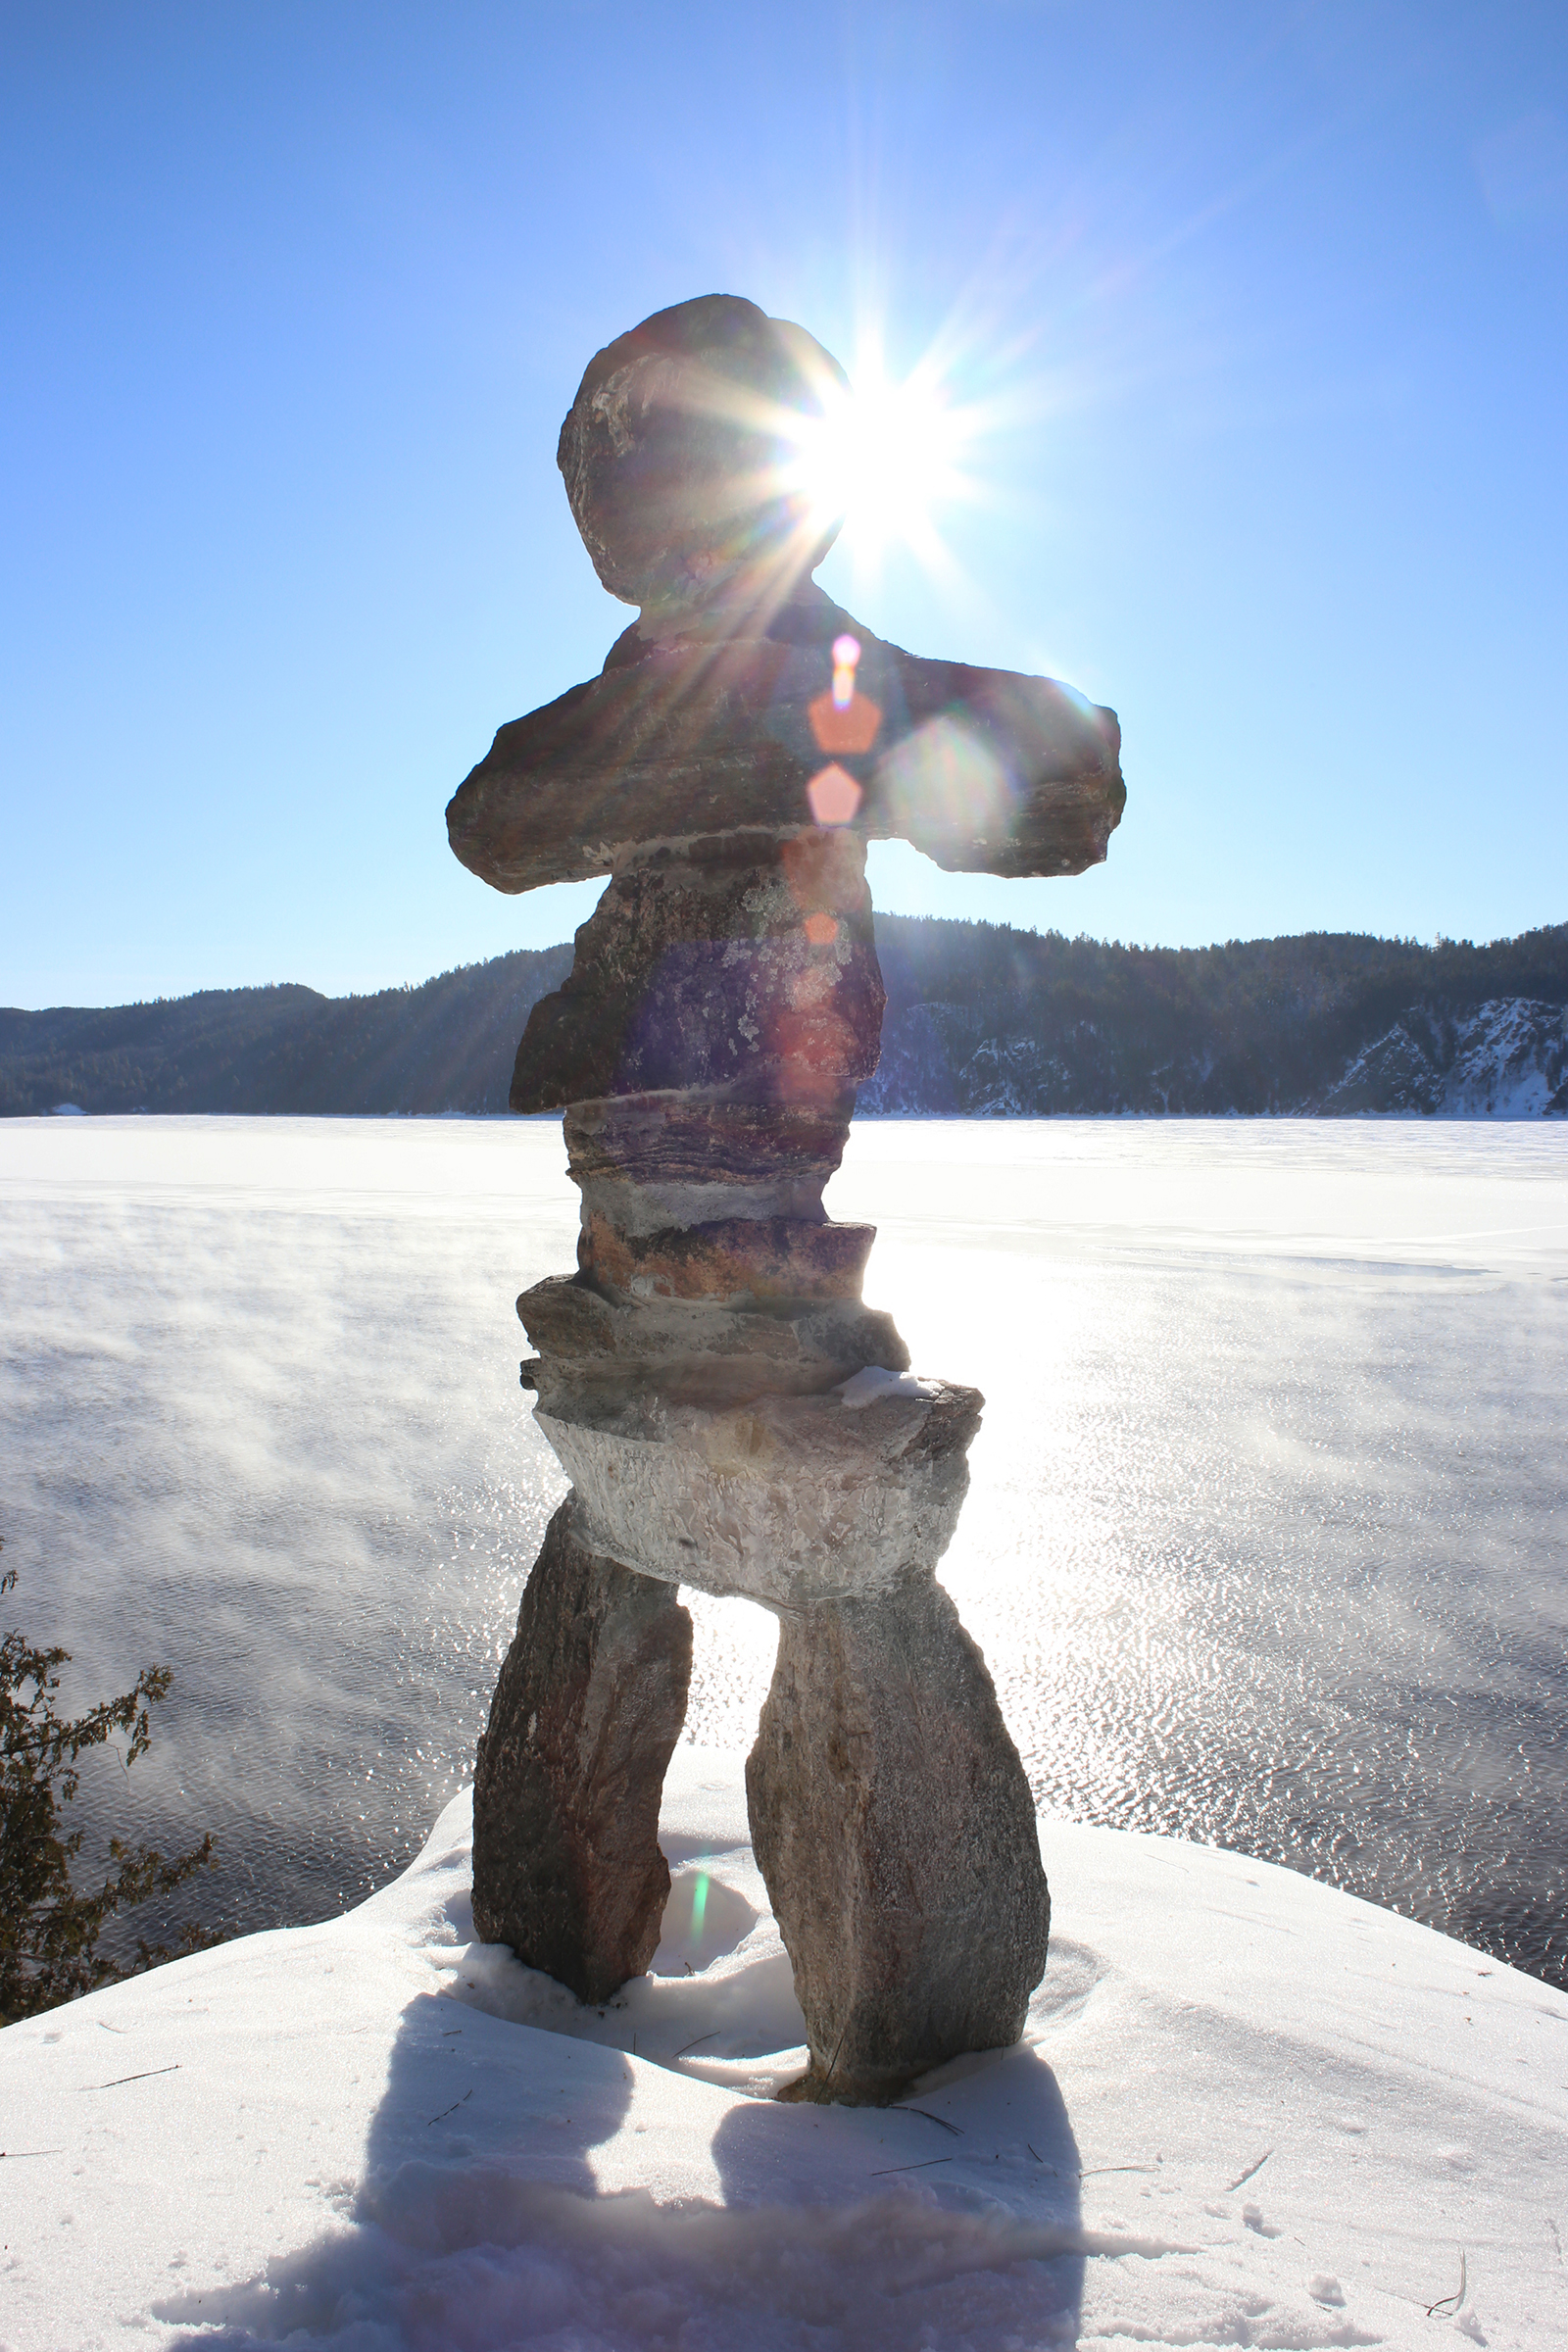 An Inukshuk overlooking a semi-frozen lake